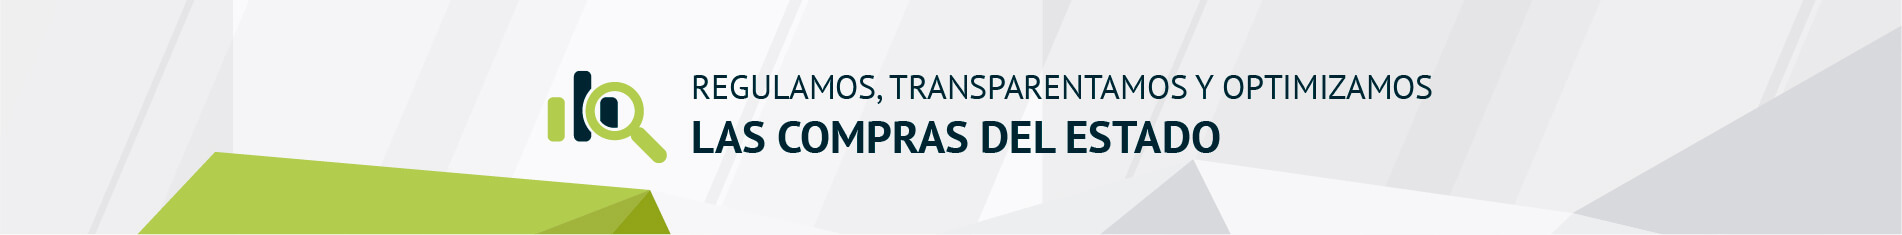 Regulamos, transparentamos y optimizamos las compras del Estado